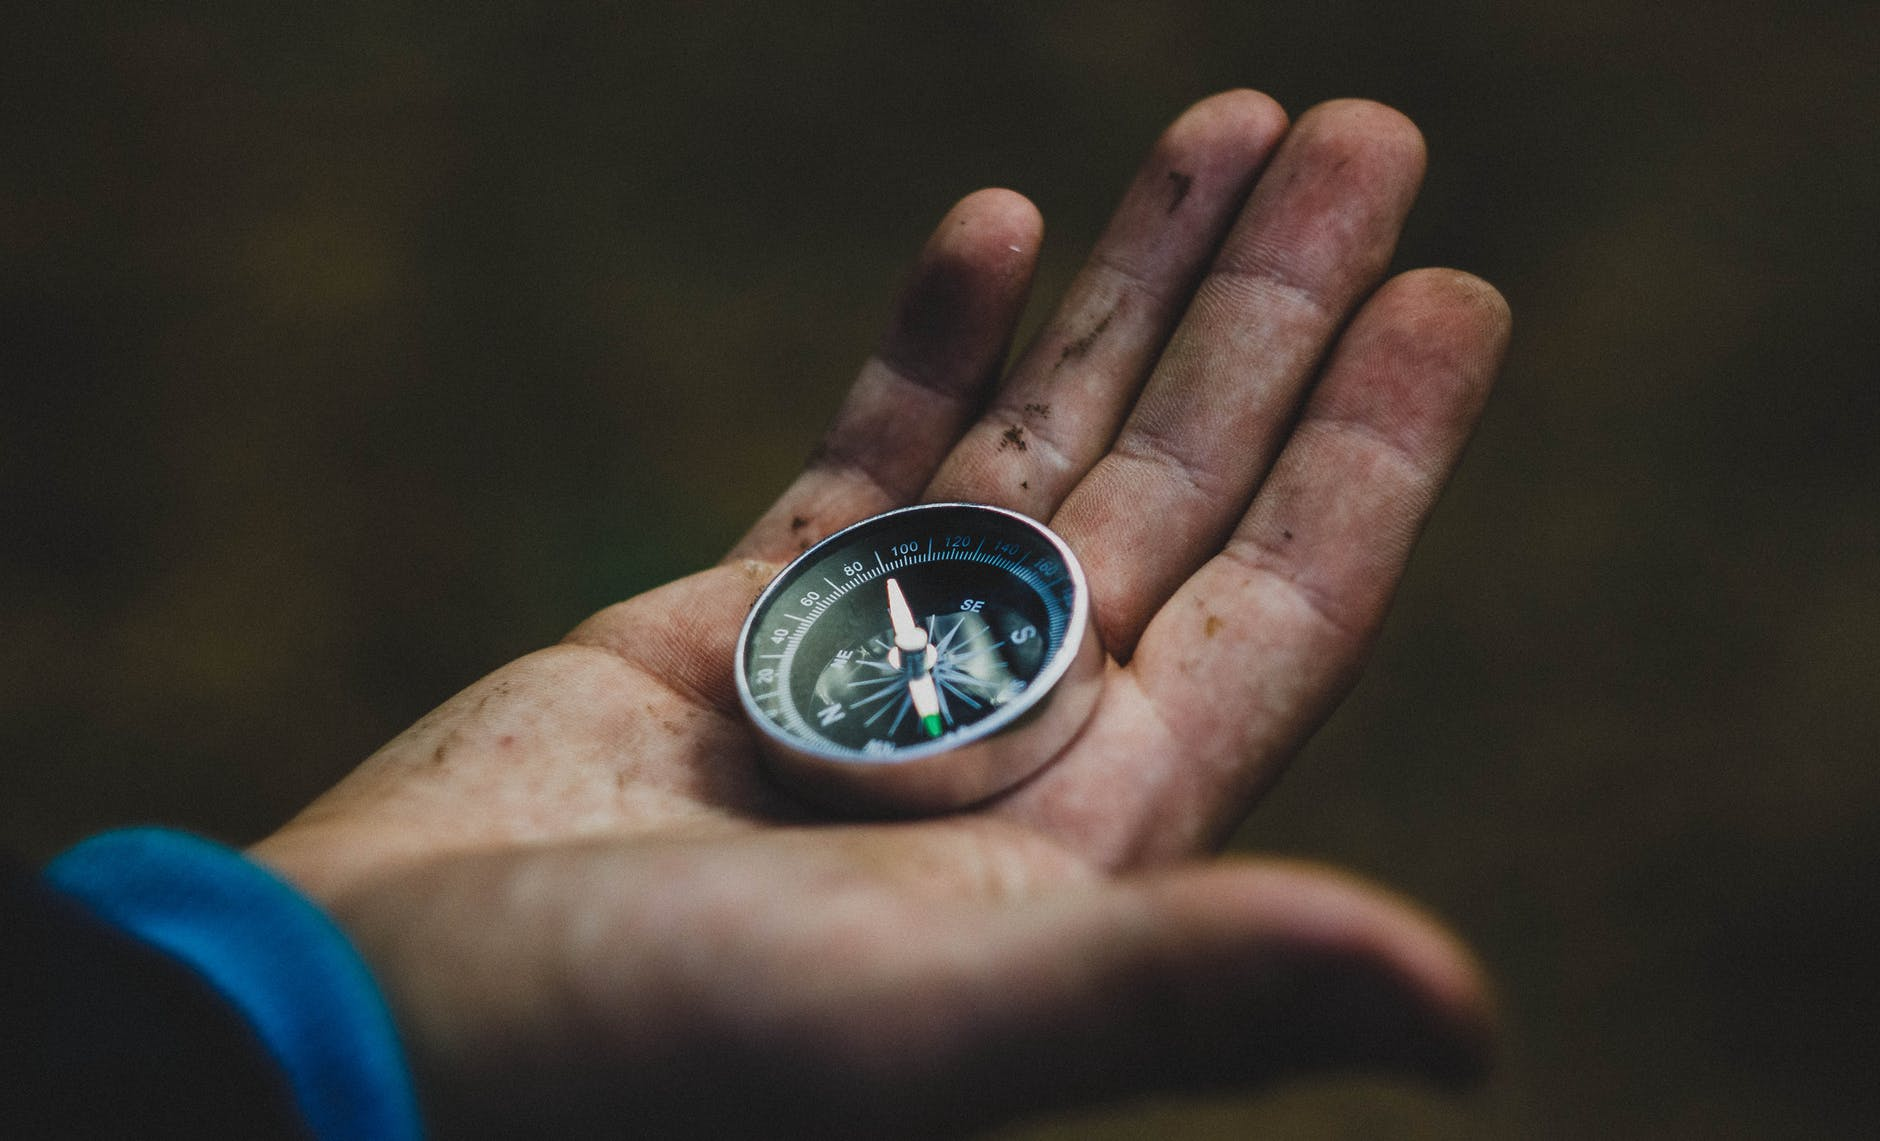 open hand with a compass in the palm